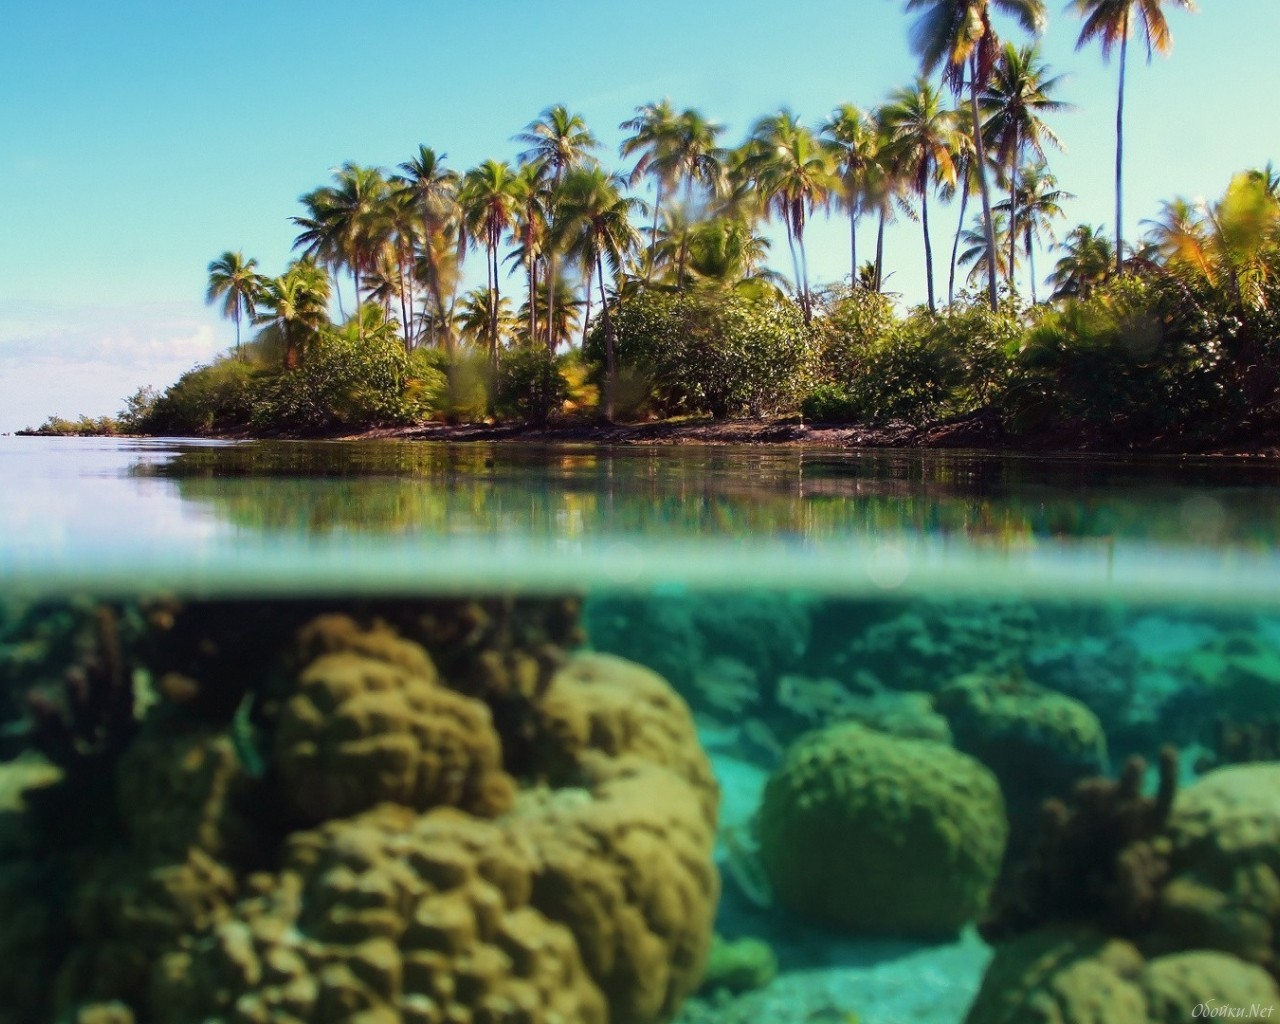 20587 download wallpaper Landscape, Sea, Palms screensavers and pictures for free